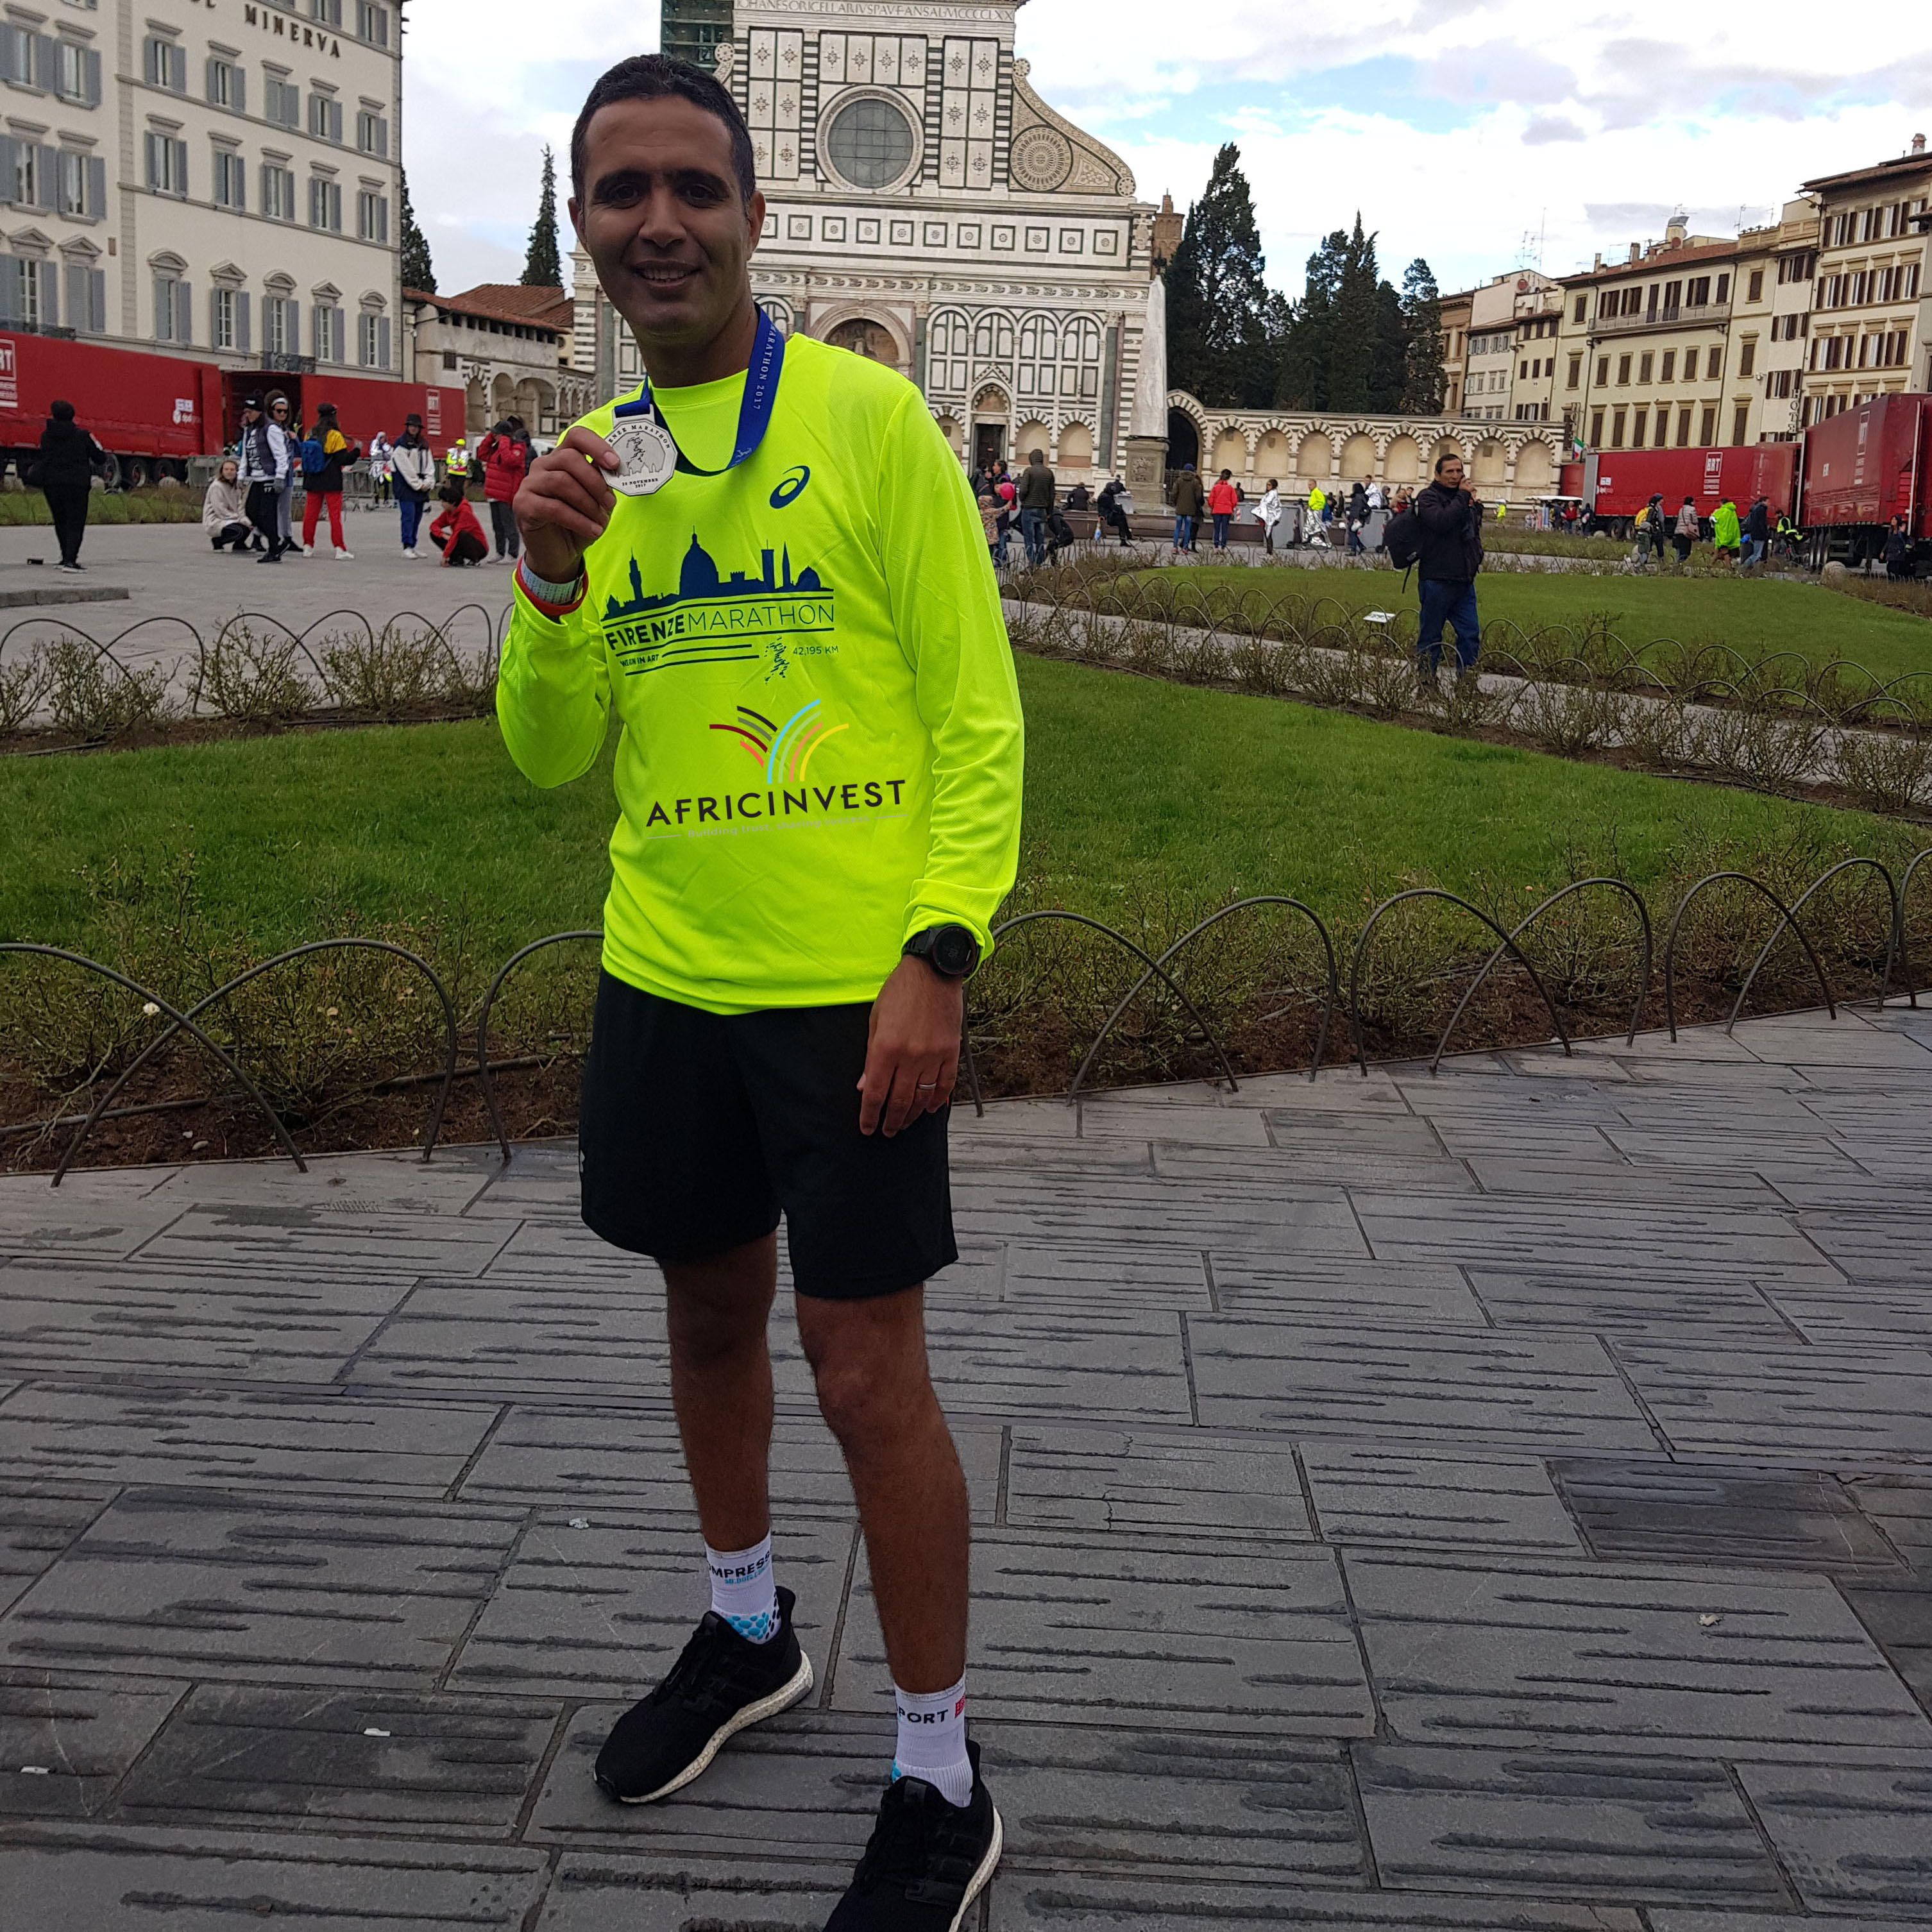 Participation of our colleague Farid Benlafdil in the Florence Marathon